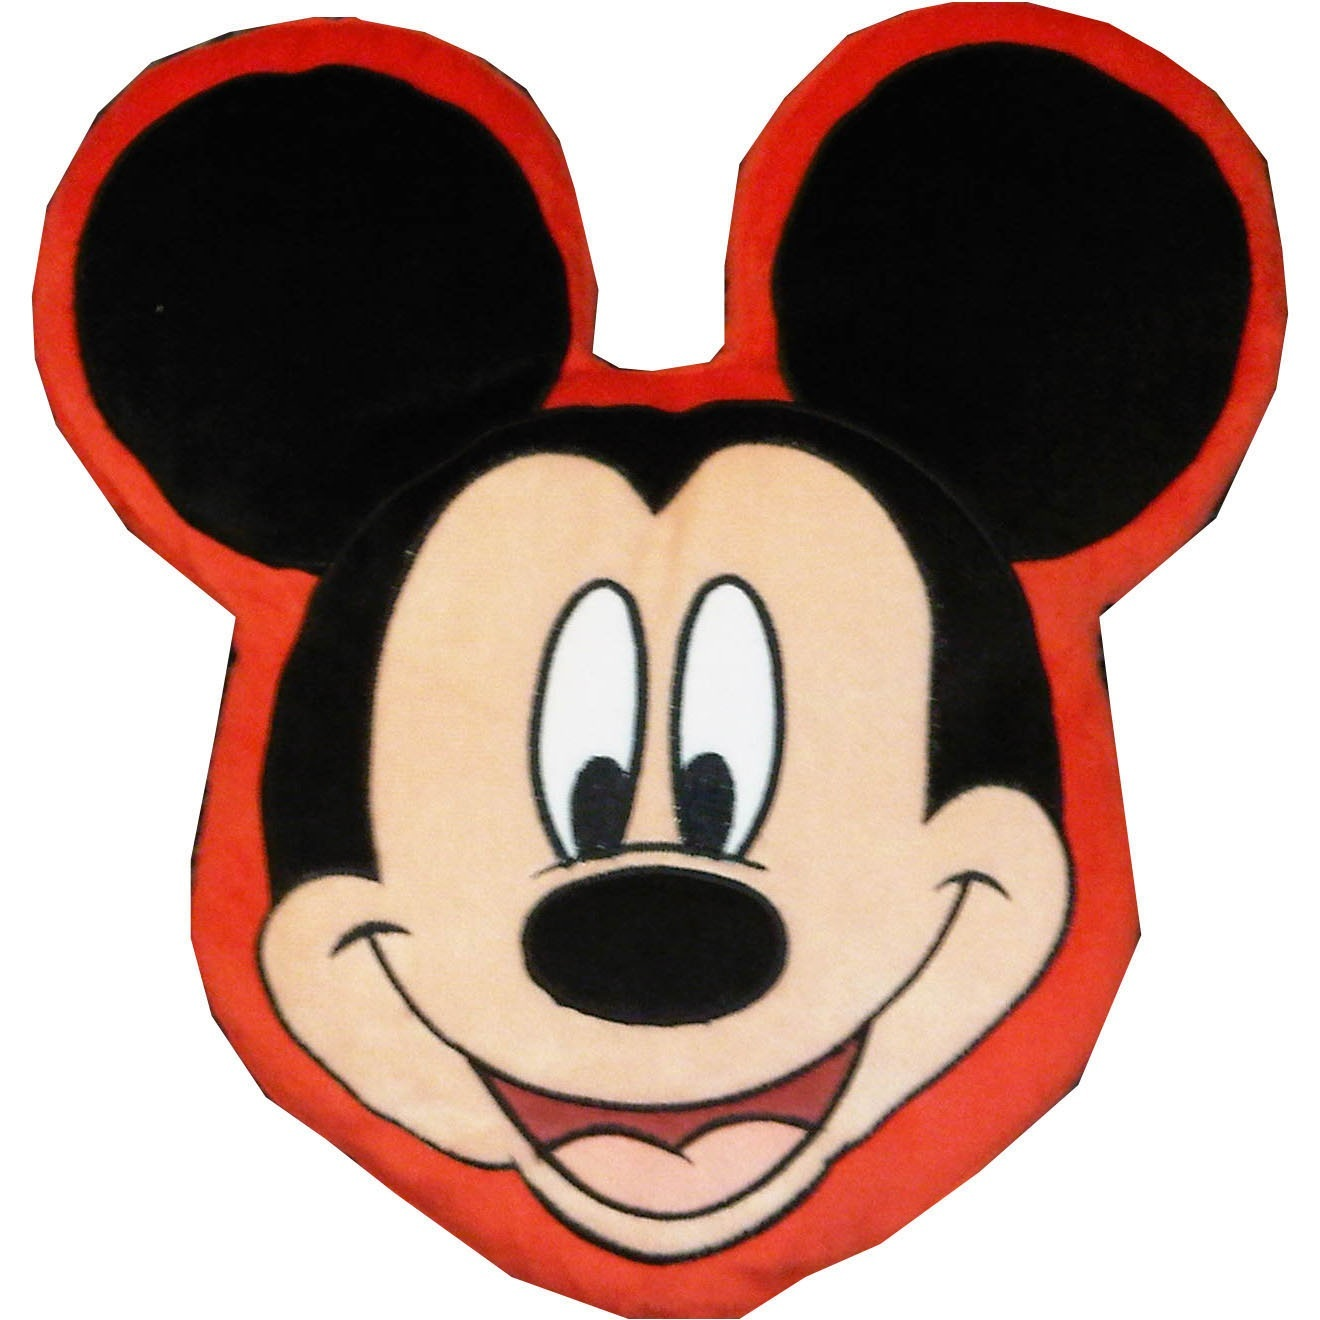 Mickey Mouse Face Image